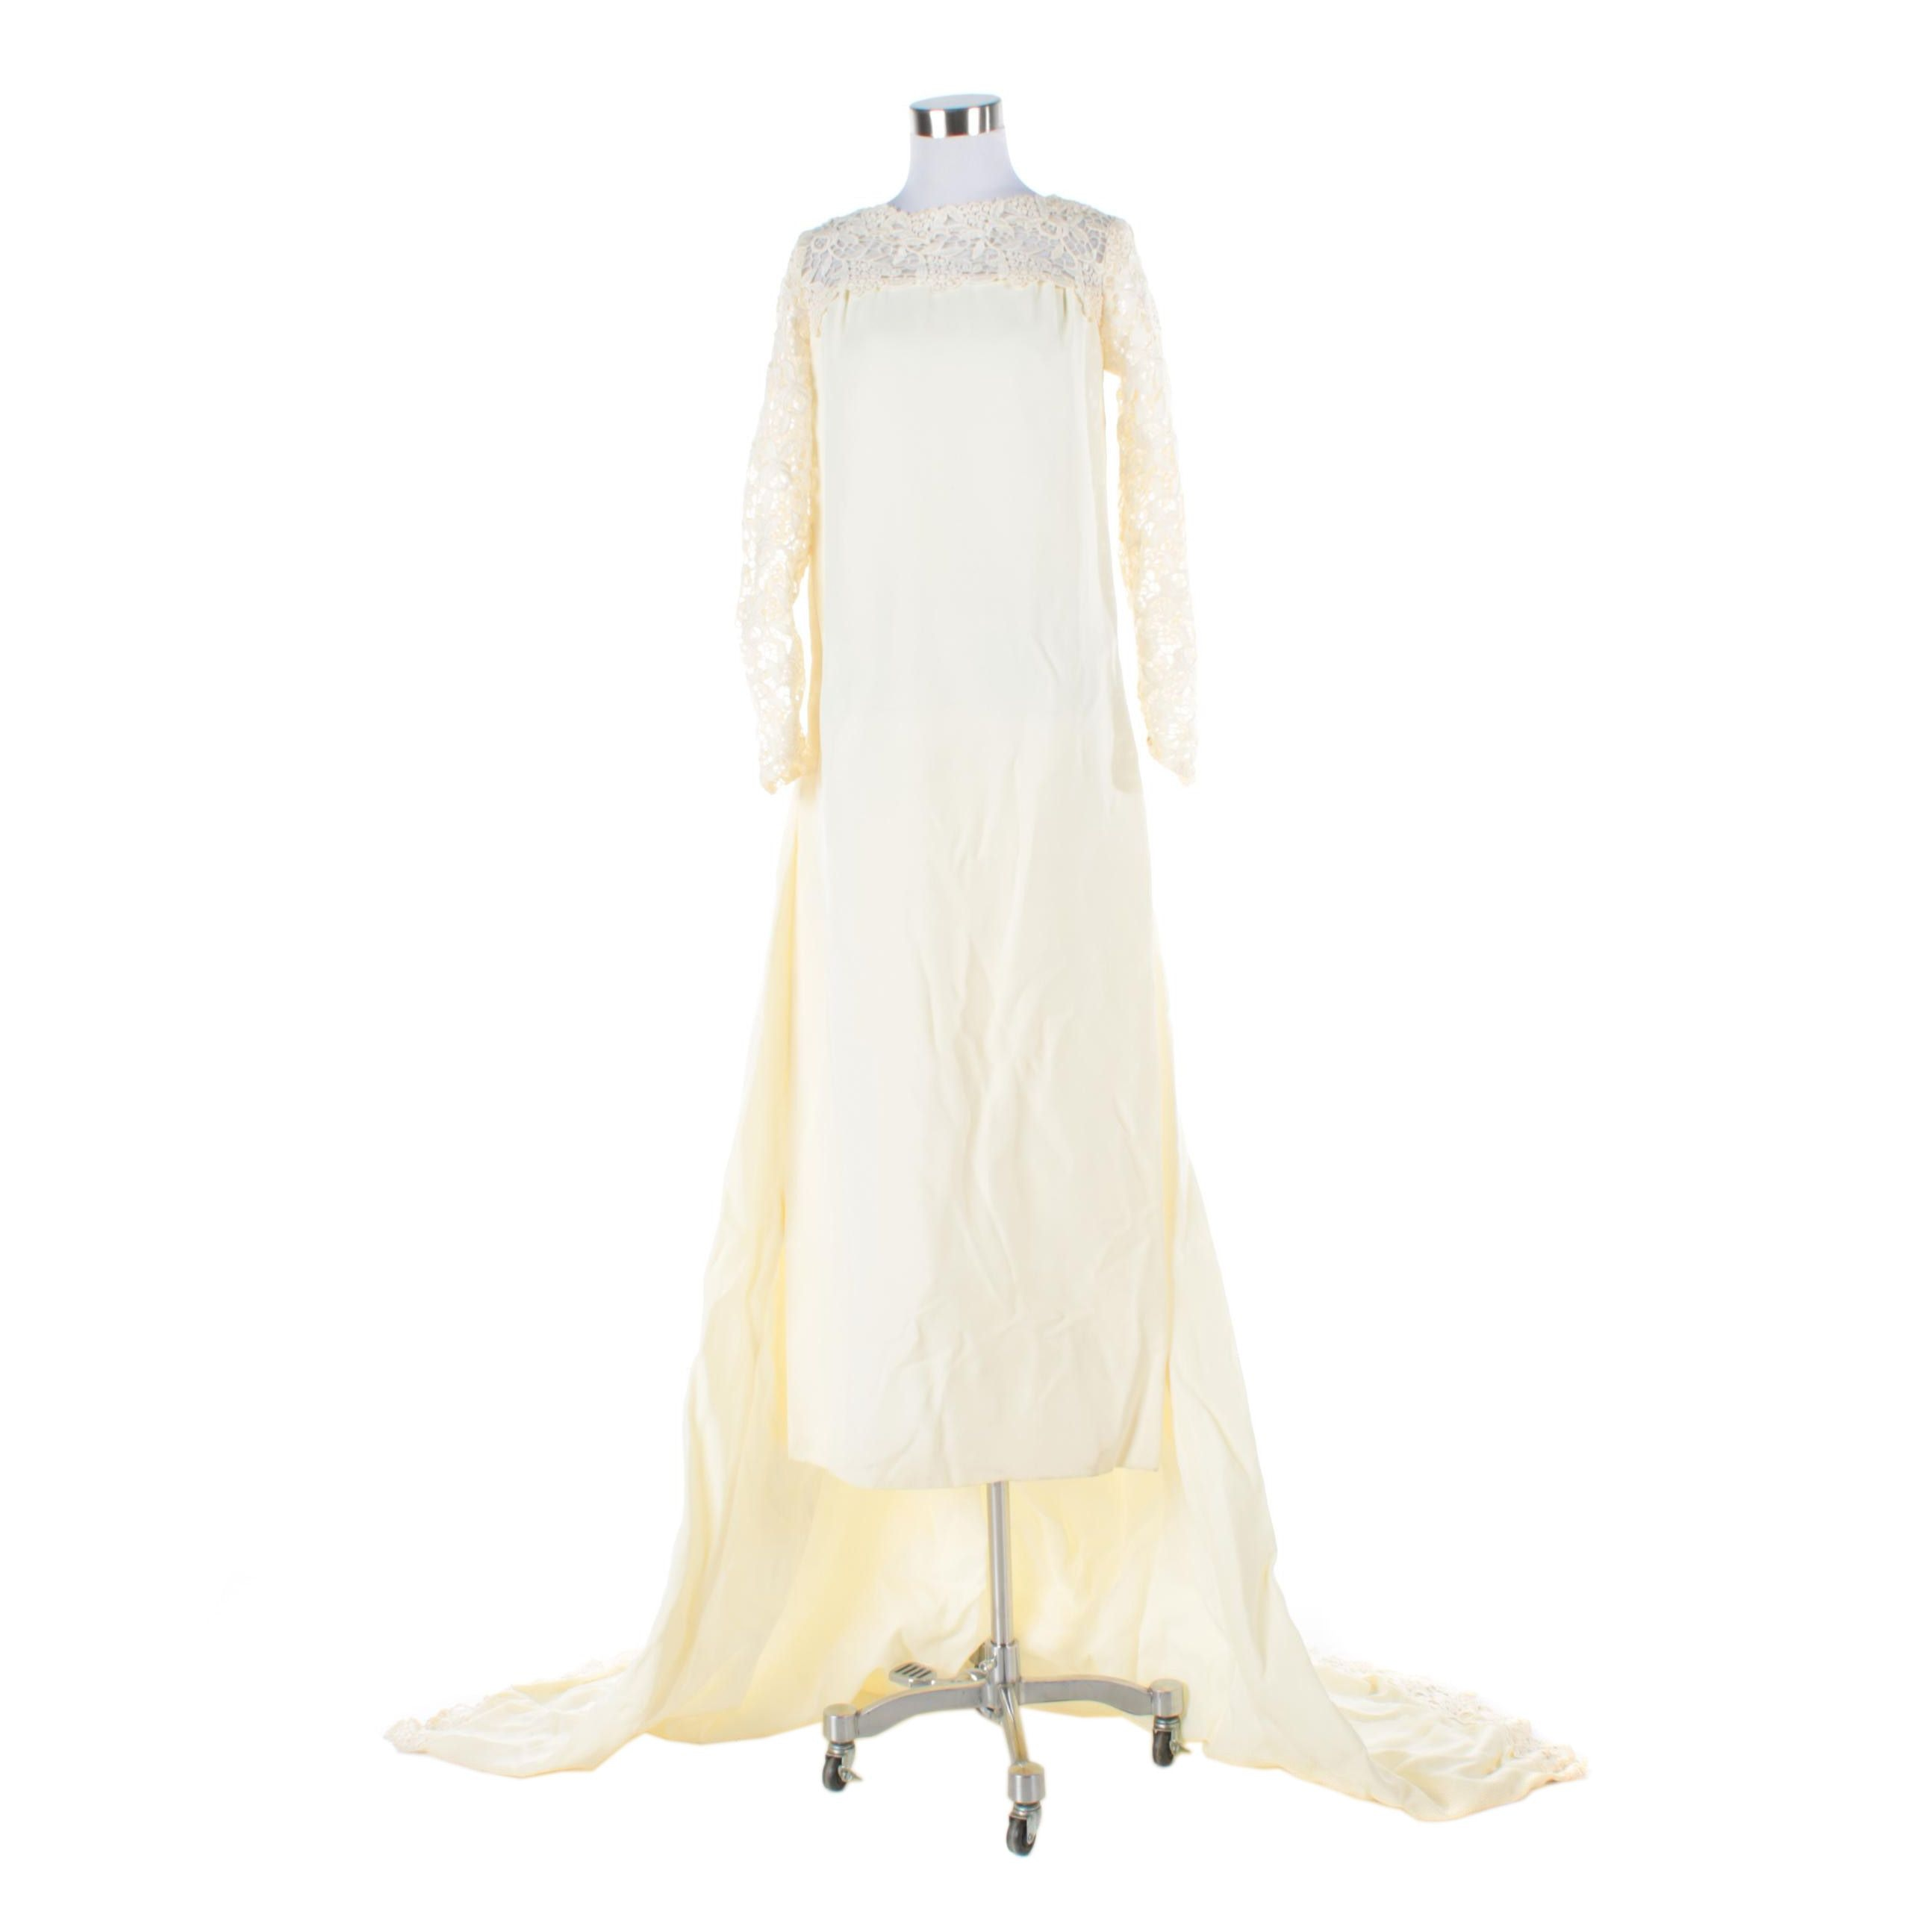 Circa 1960s Vintage, Limited Edition Wedding Dress with Detachable Train